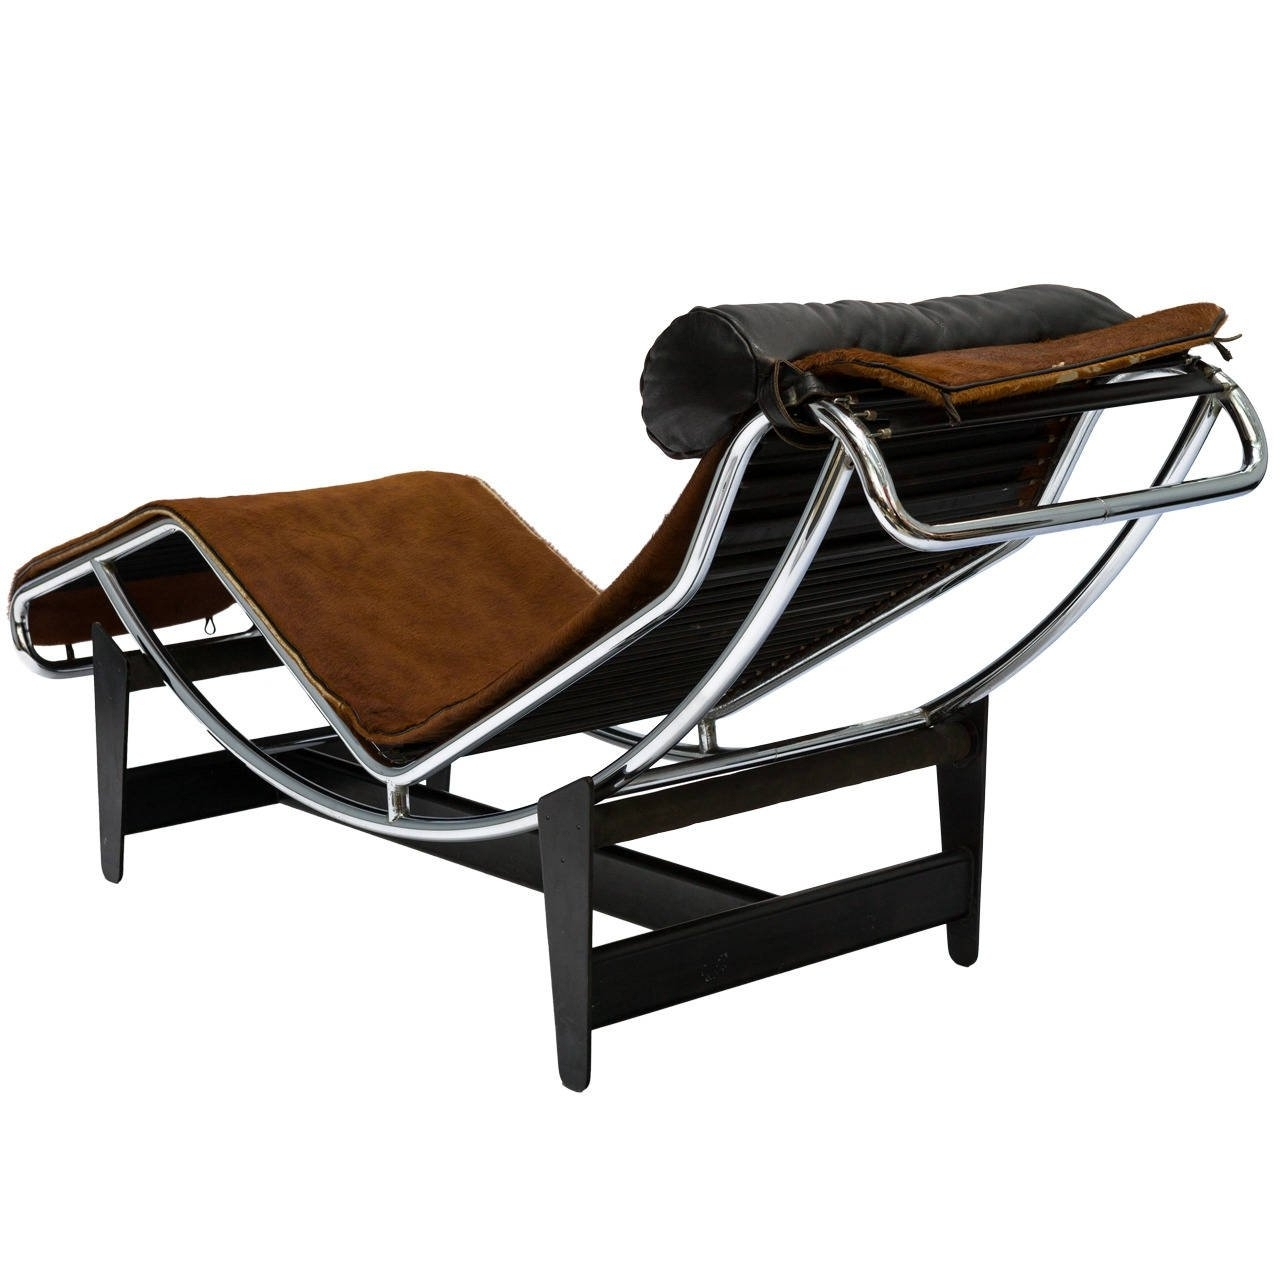 Most Recent Le Corbusier Lc4 Chaise Lounge Chair In Cowhide For Sale At 1Stdibs With Brown Chaise Lounge Chair By Le Corbusier (View 11 of 15)